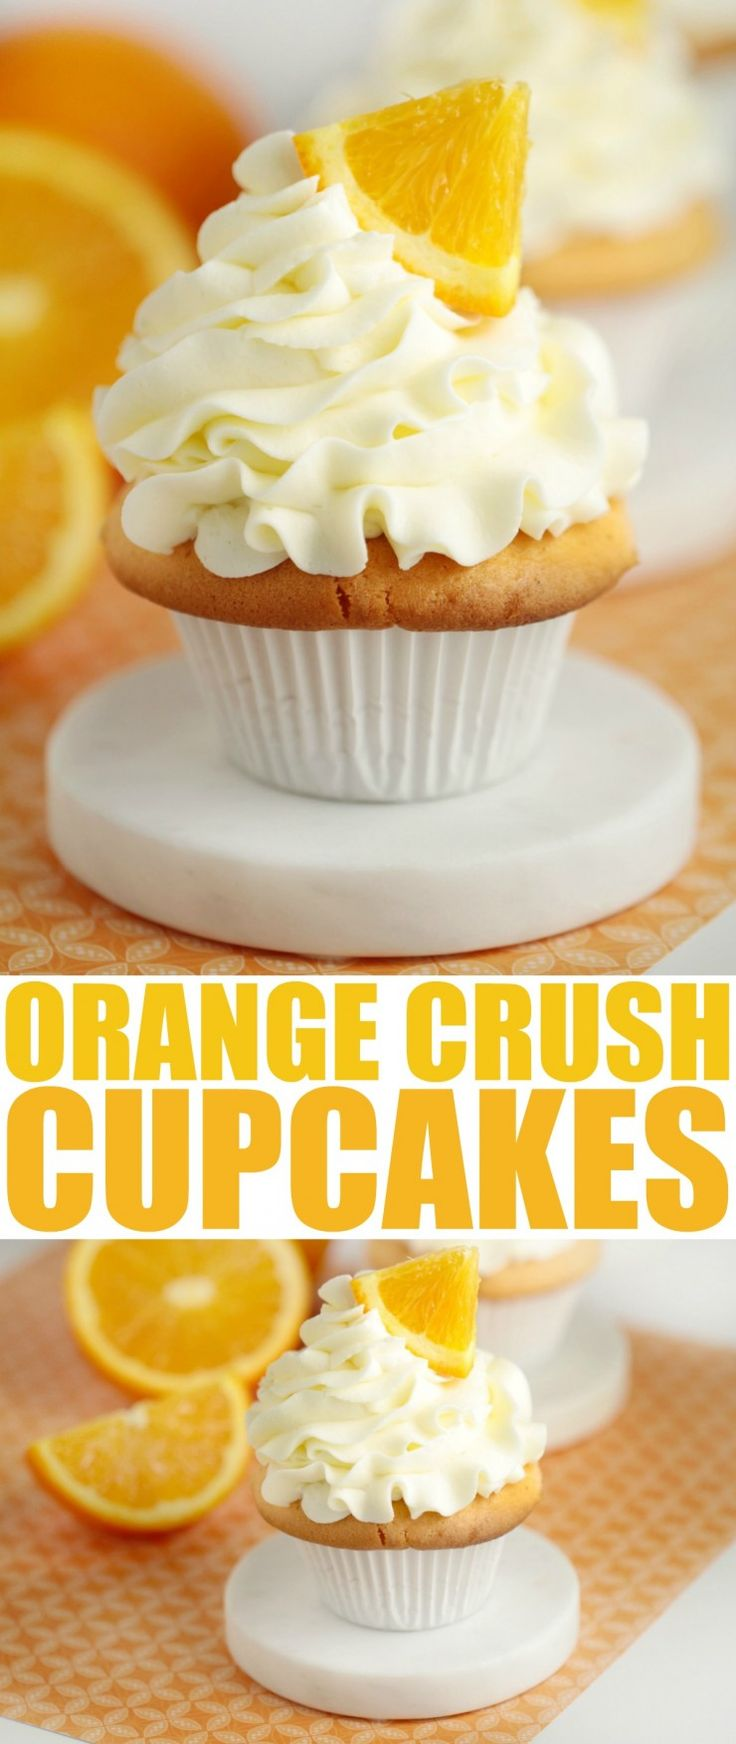 I love doctoring box cake mixes and quite frankly this doctored cake mix recipe for orange crush cupcakes is the bomb. It's got bright citrus flavours and results in a divine, fluffy cupcake.